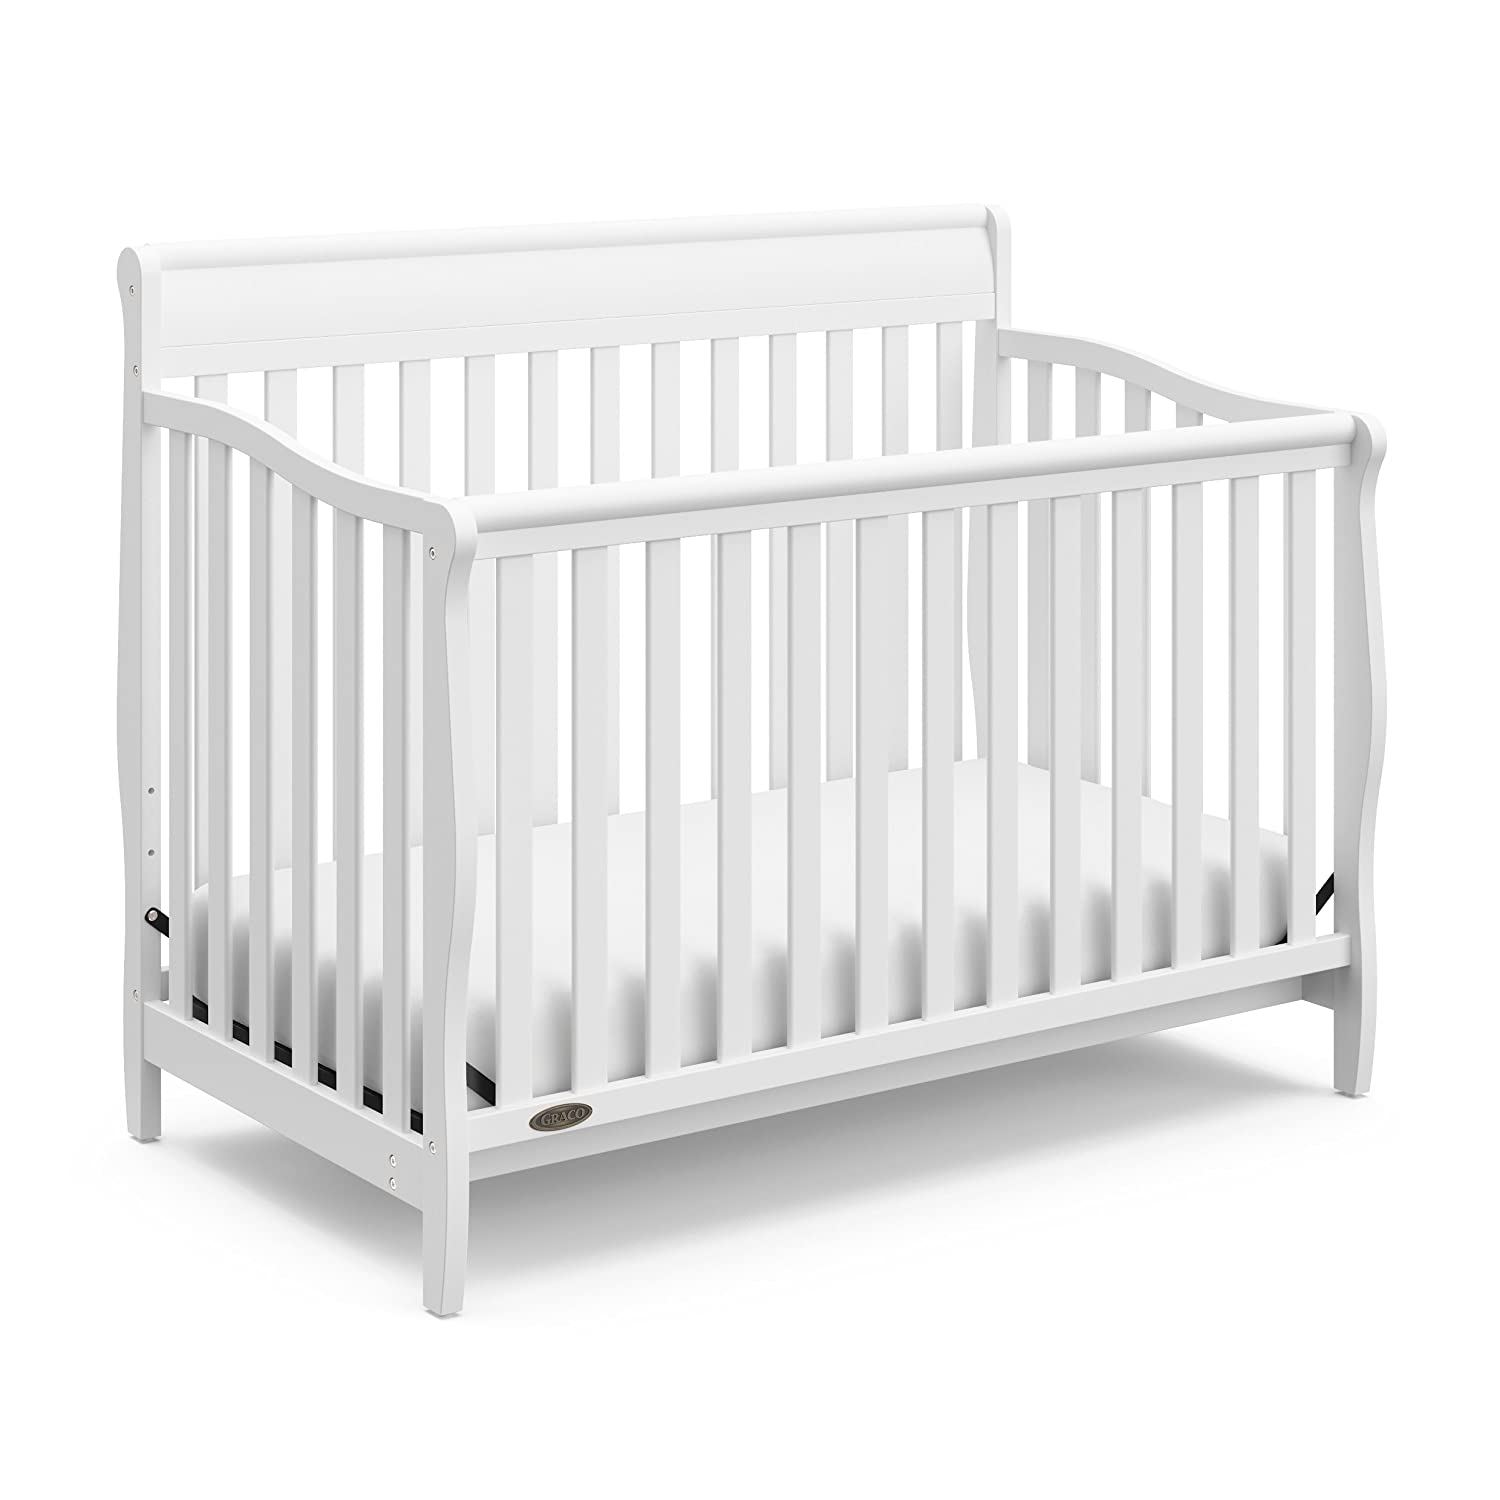 Graco Stanton 4-in-1 Convertible Crib, White Storkcraft 04530-661